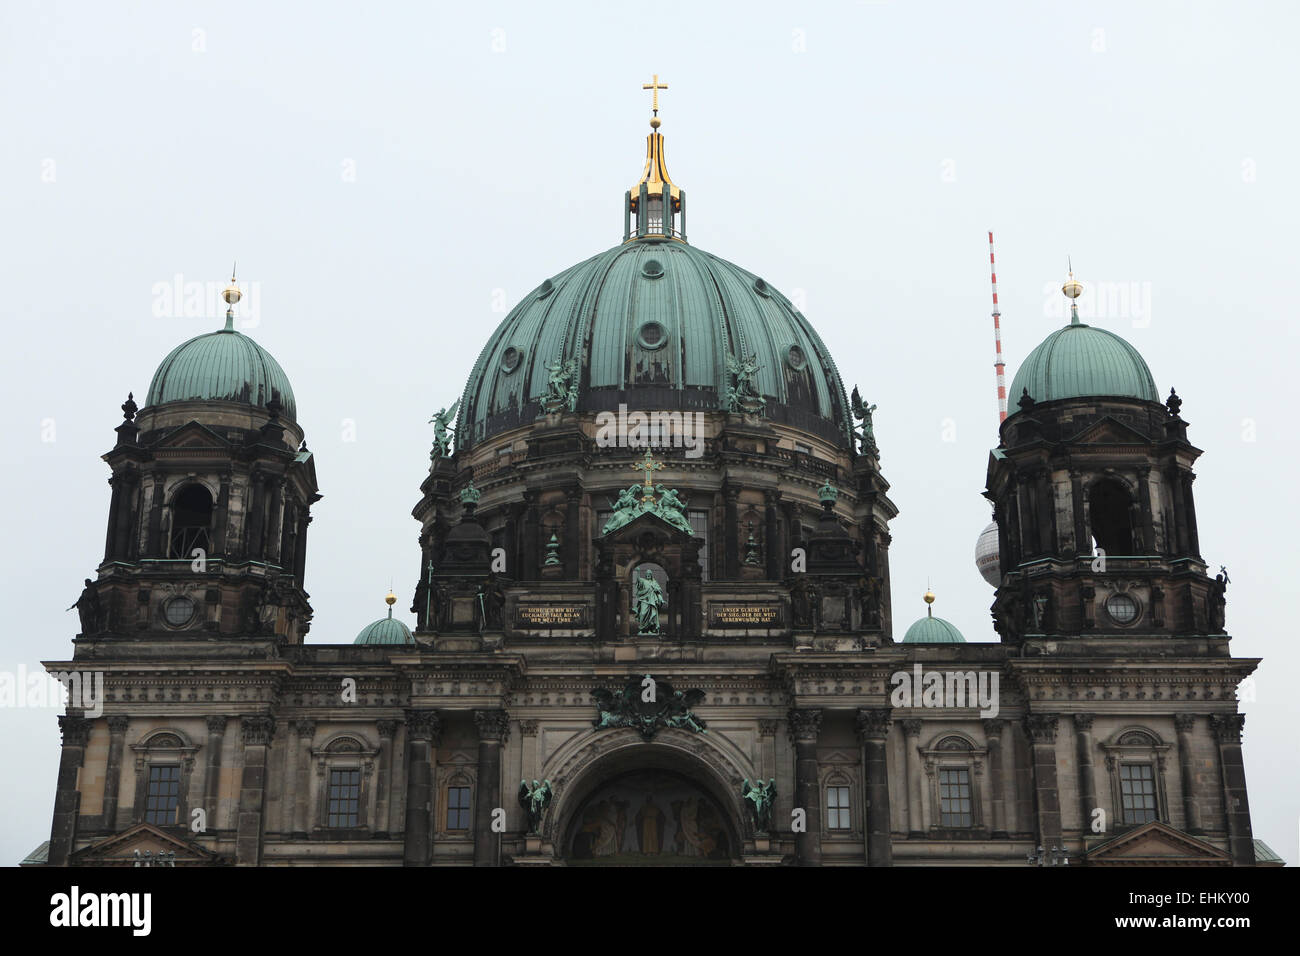 Berlin Cathedral (Berliner Dom) at the Museum Island in Berlin, Germany. - Stock Image